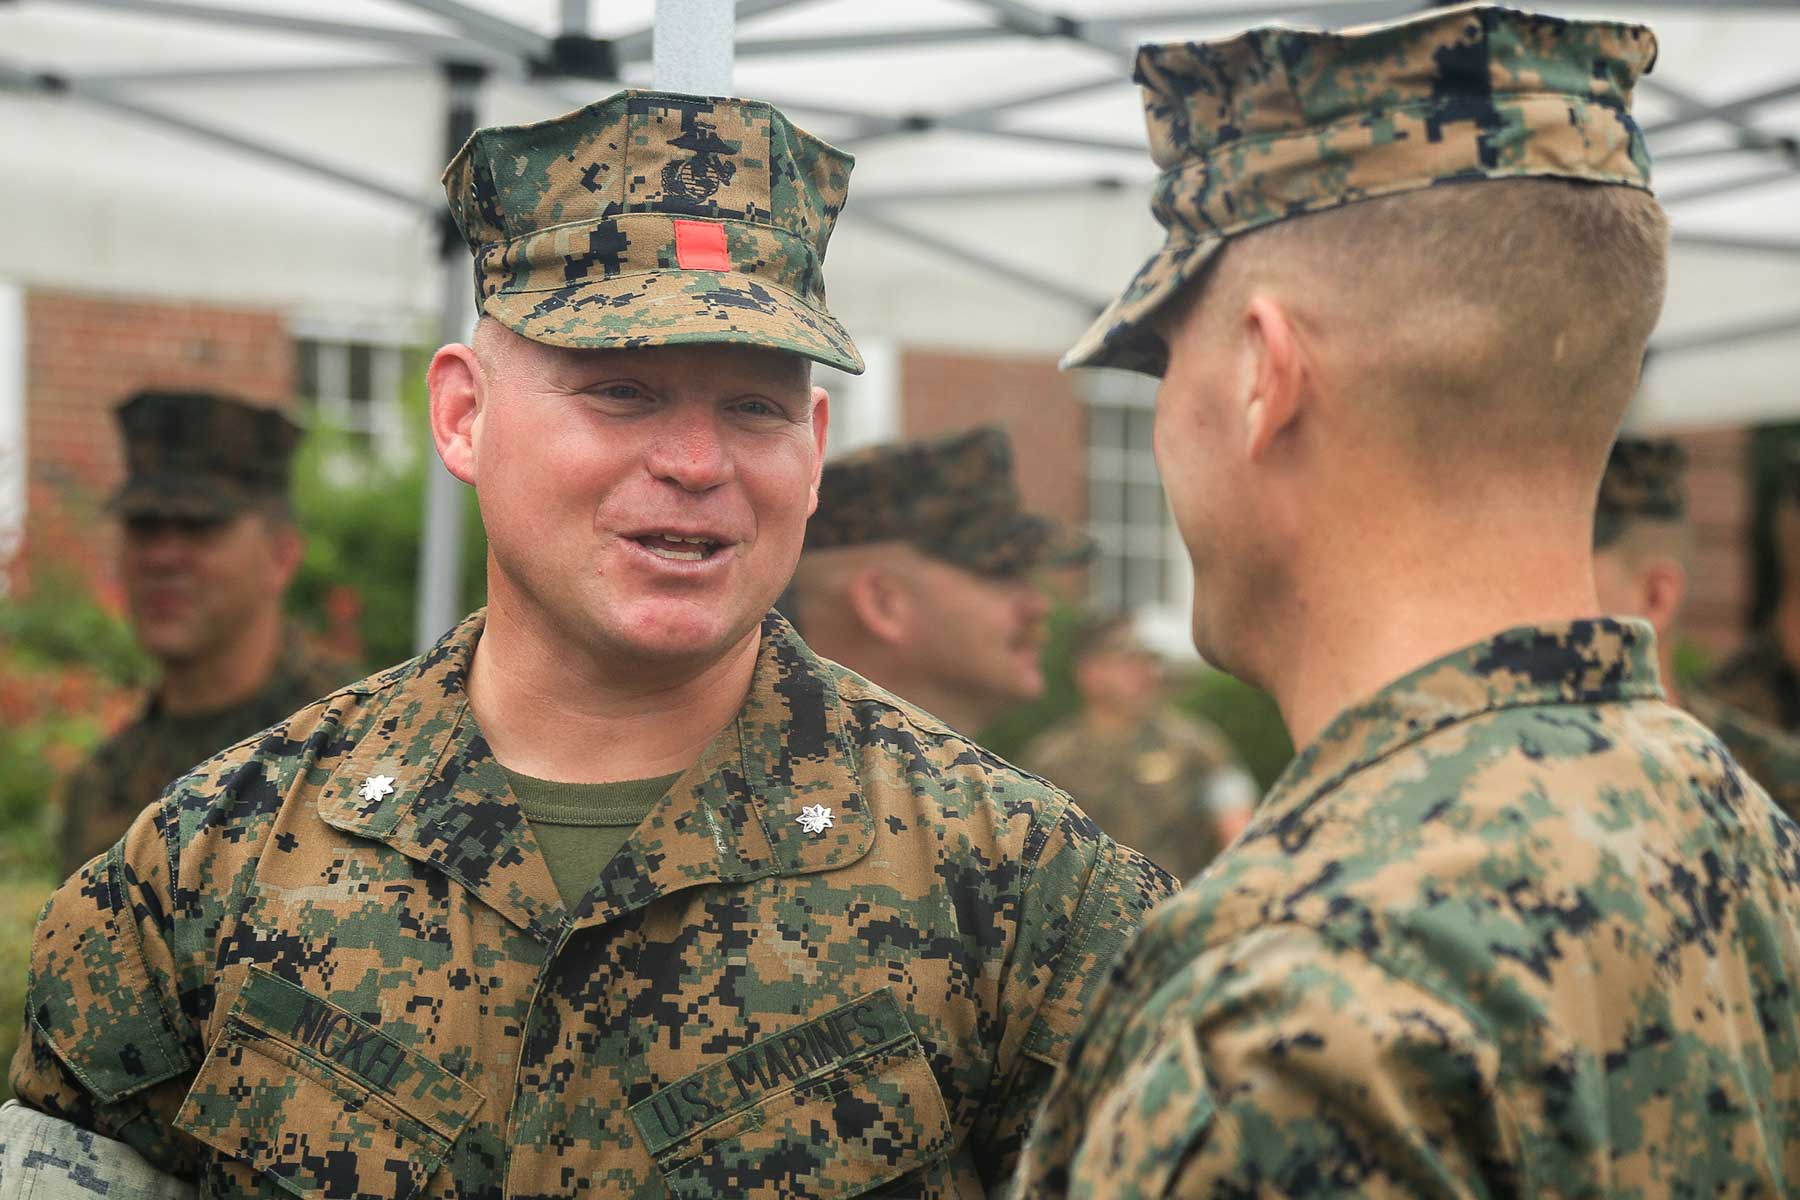 Marines Will Be Seeing More of These Red Patches on Utility Covers. Here's Why